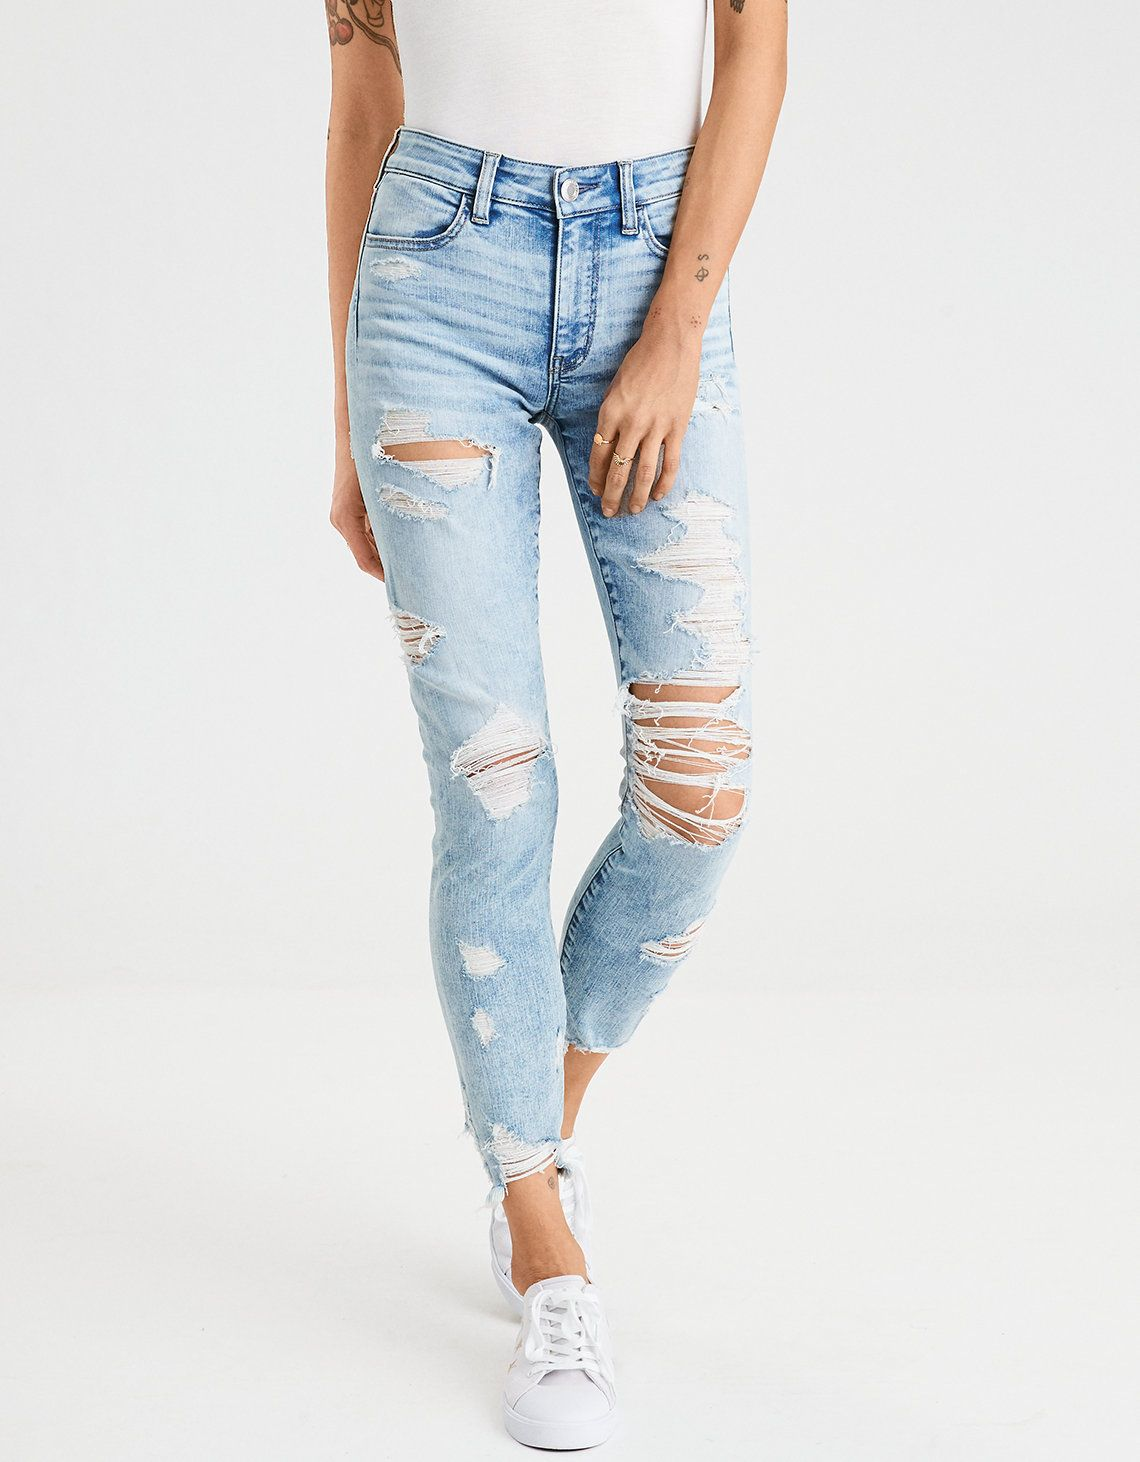 b4656b25d8a79 Cutest ever high waisted destroyed dressed light wash cropped denim jeans  summer 2018 American Eagle